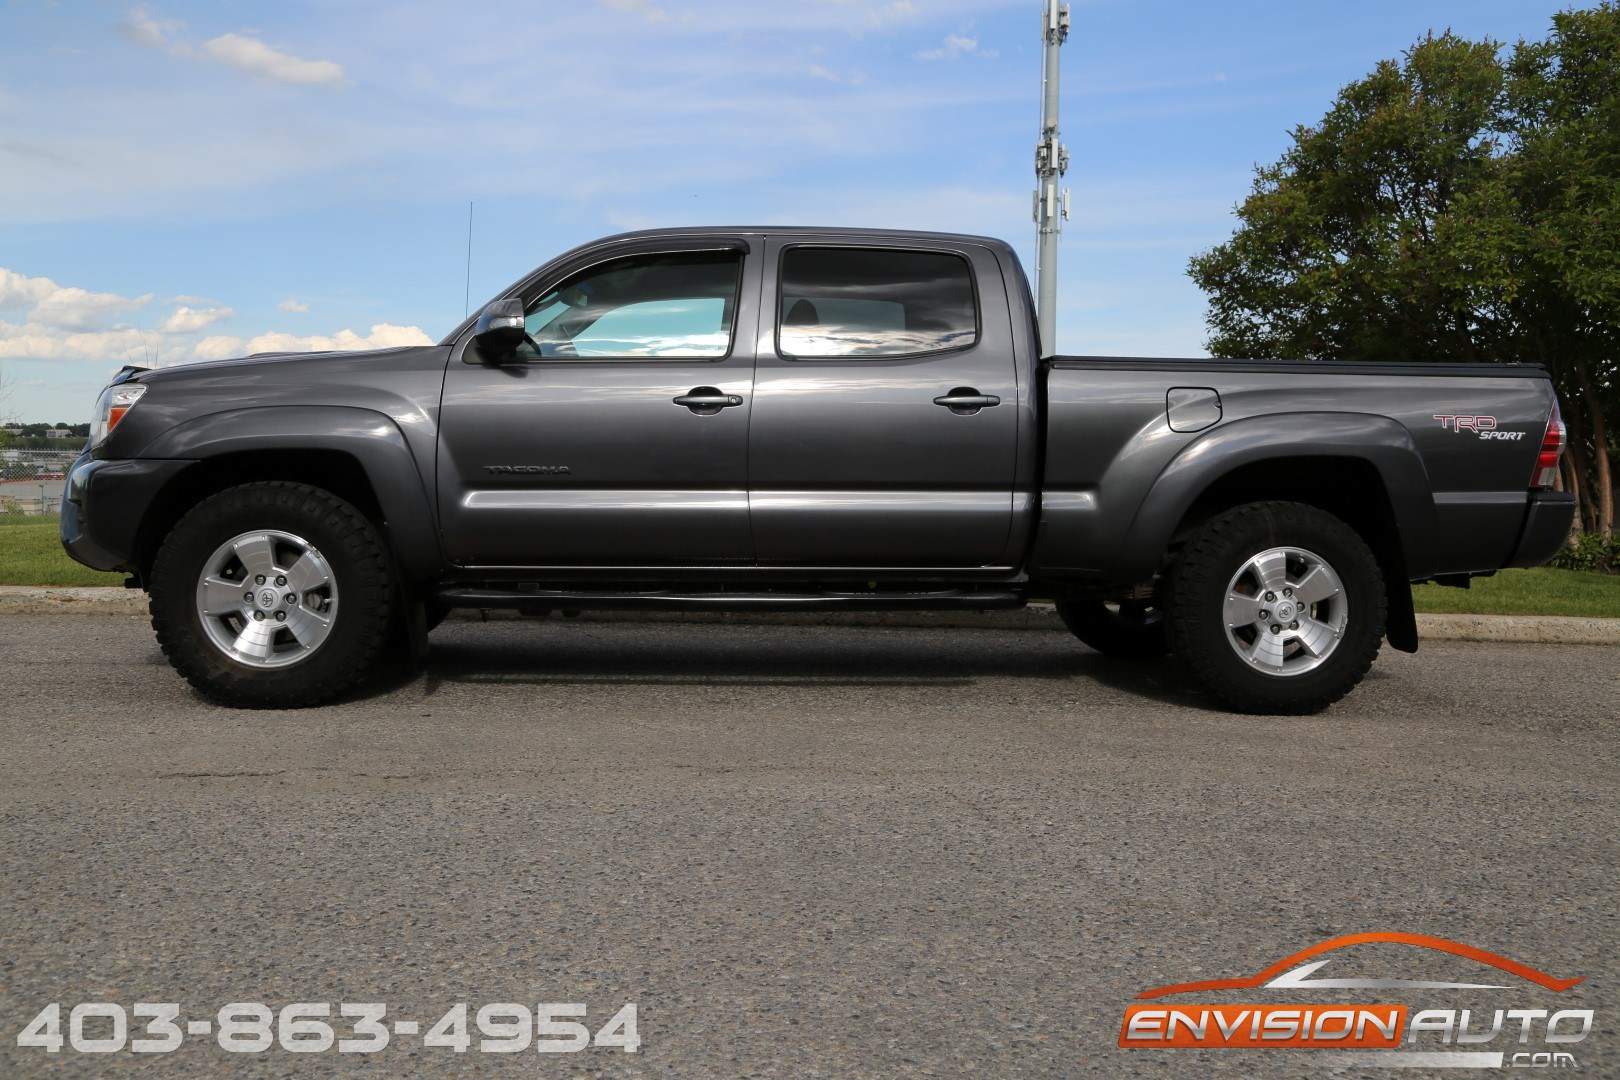 2013 toyota tacoma double cab 4 4 trd supercharged envision auto calgary highline luxury. Black Bedroom Furniture Sets. Home Design Ideas